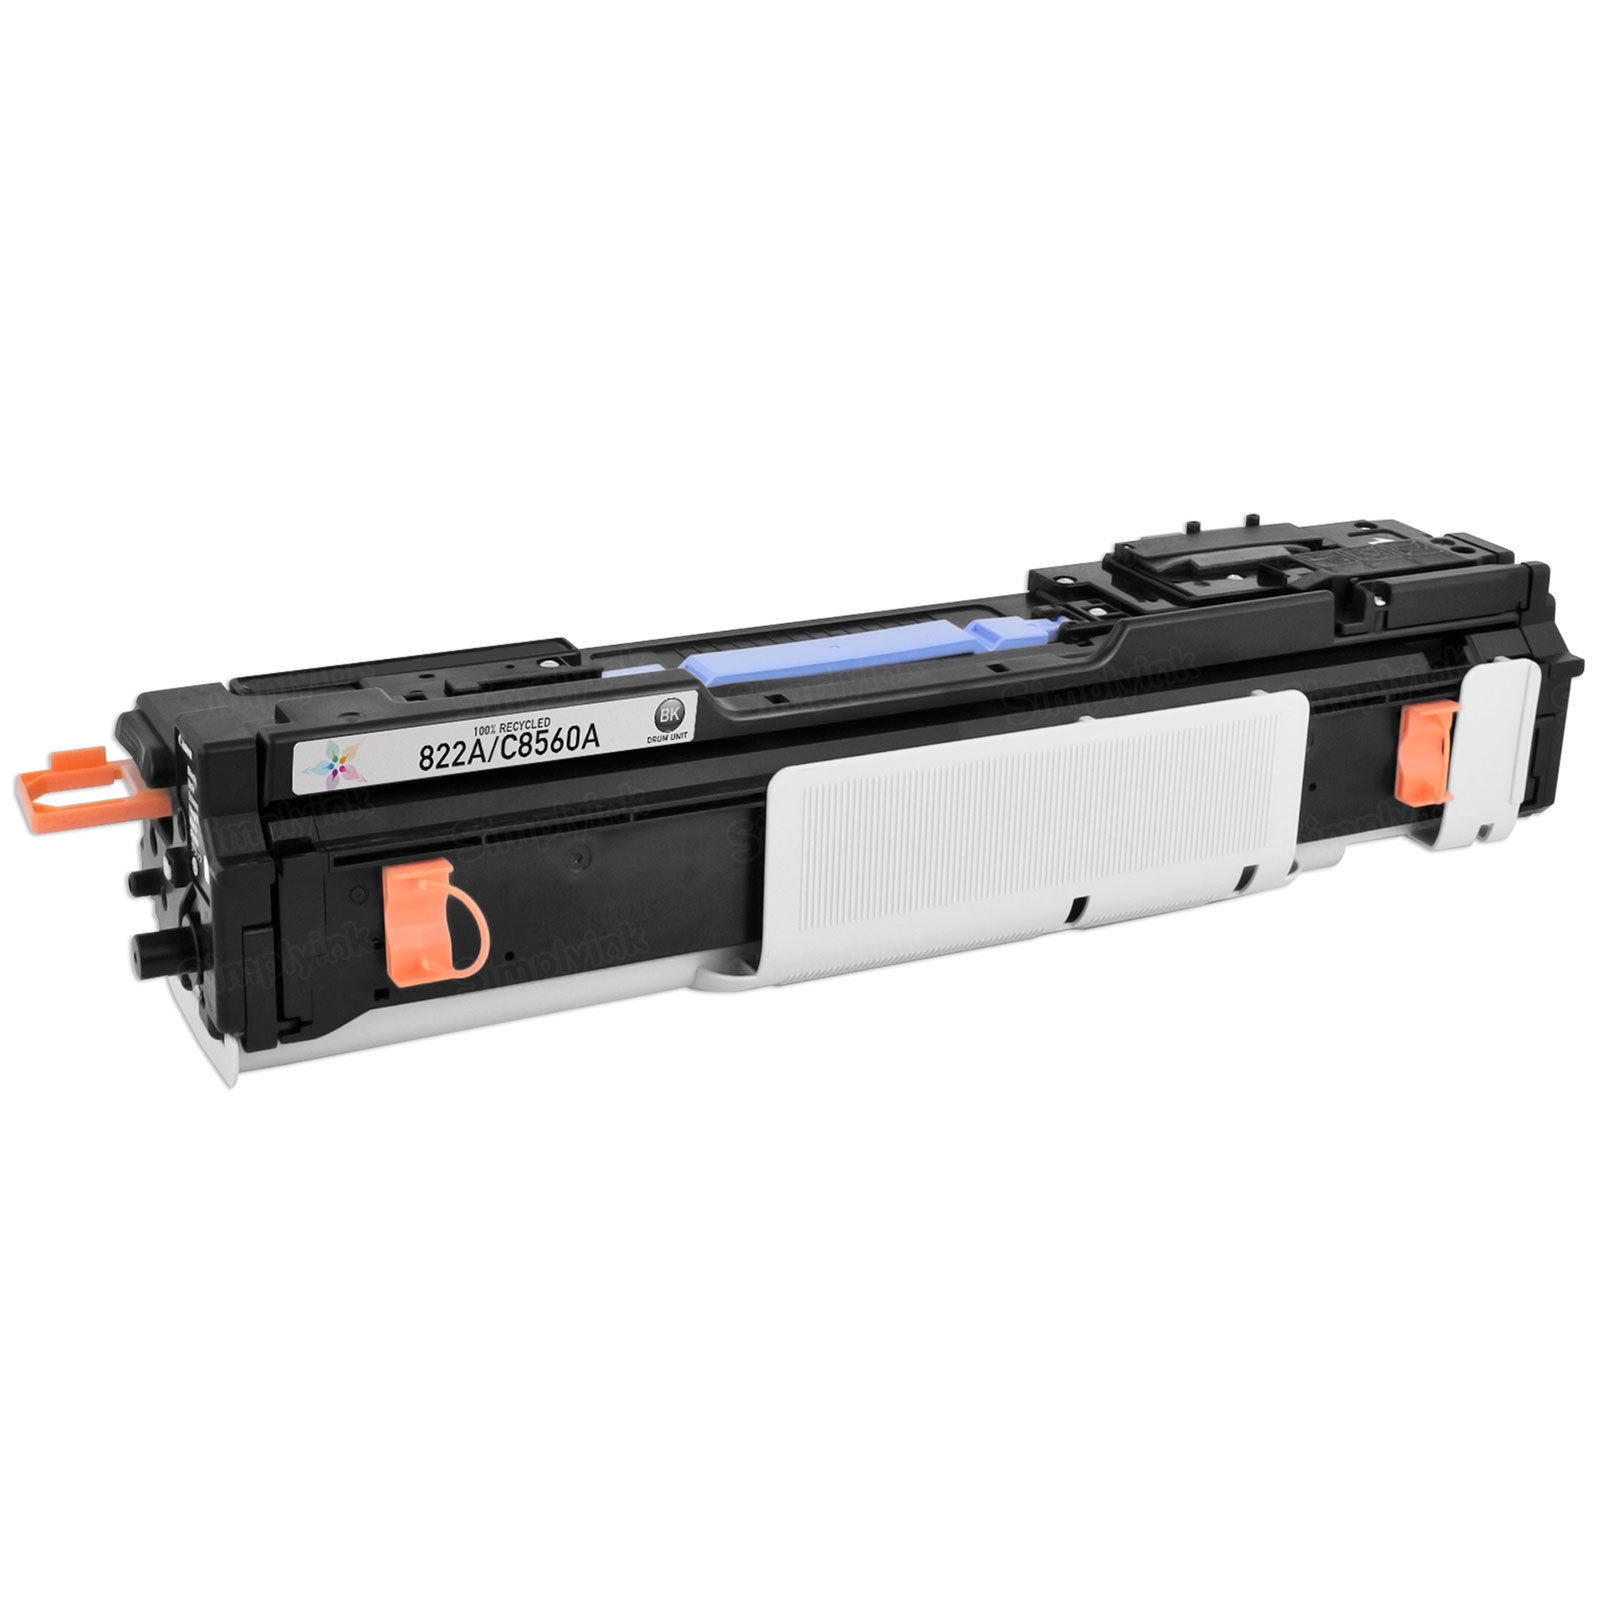 Remanufactured Replacement Black Laser Drum for HP 822A